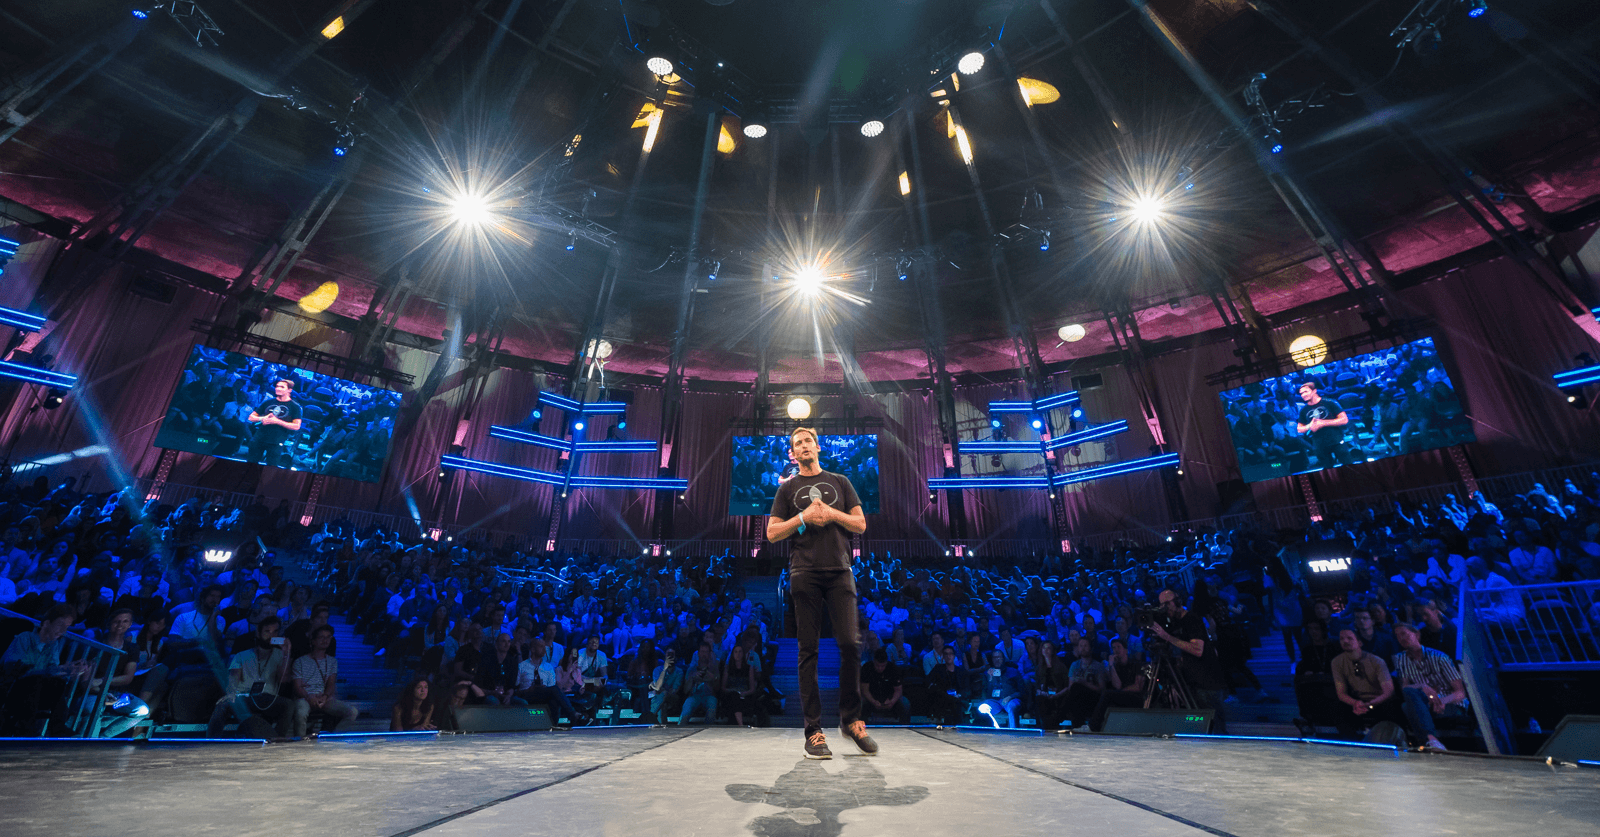 TNW2019 Daily: Build your own conference schedule